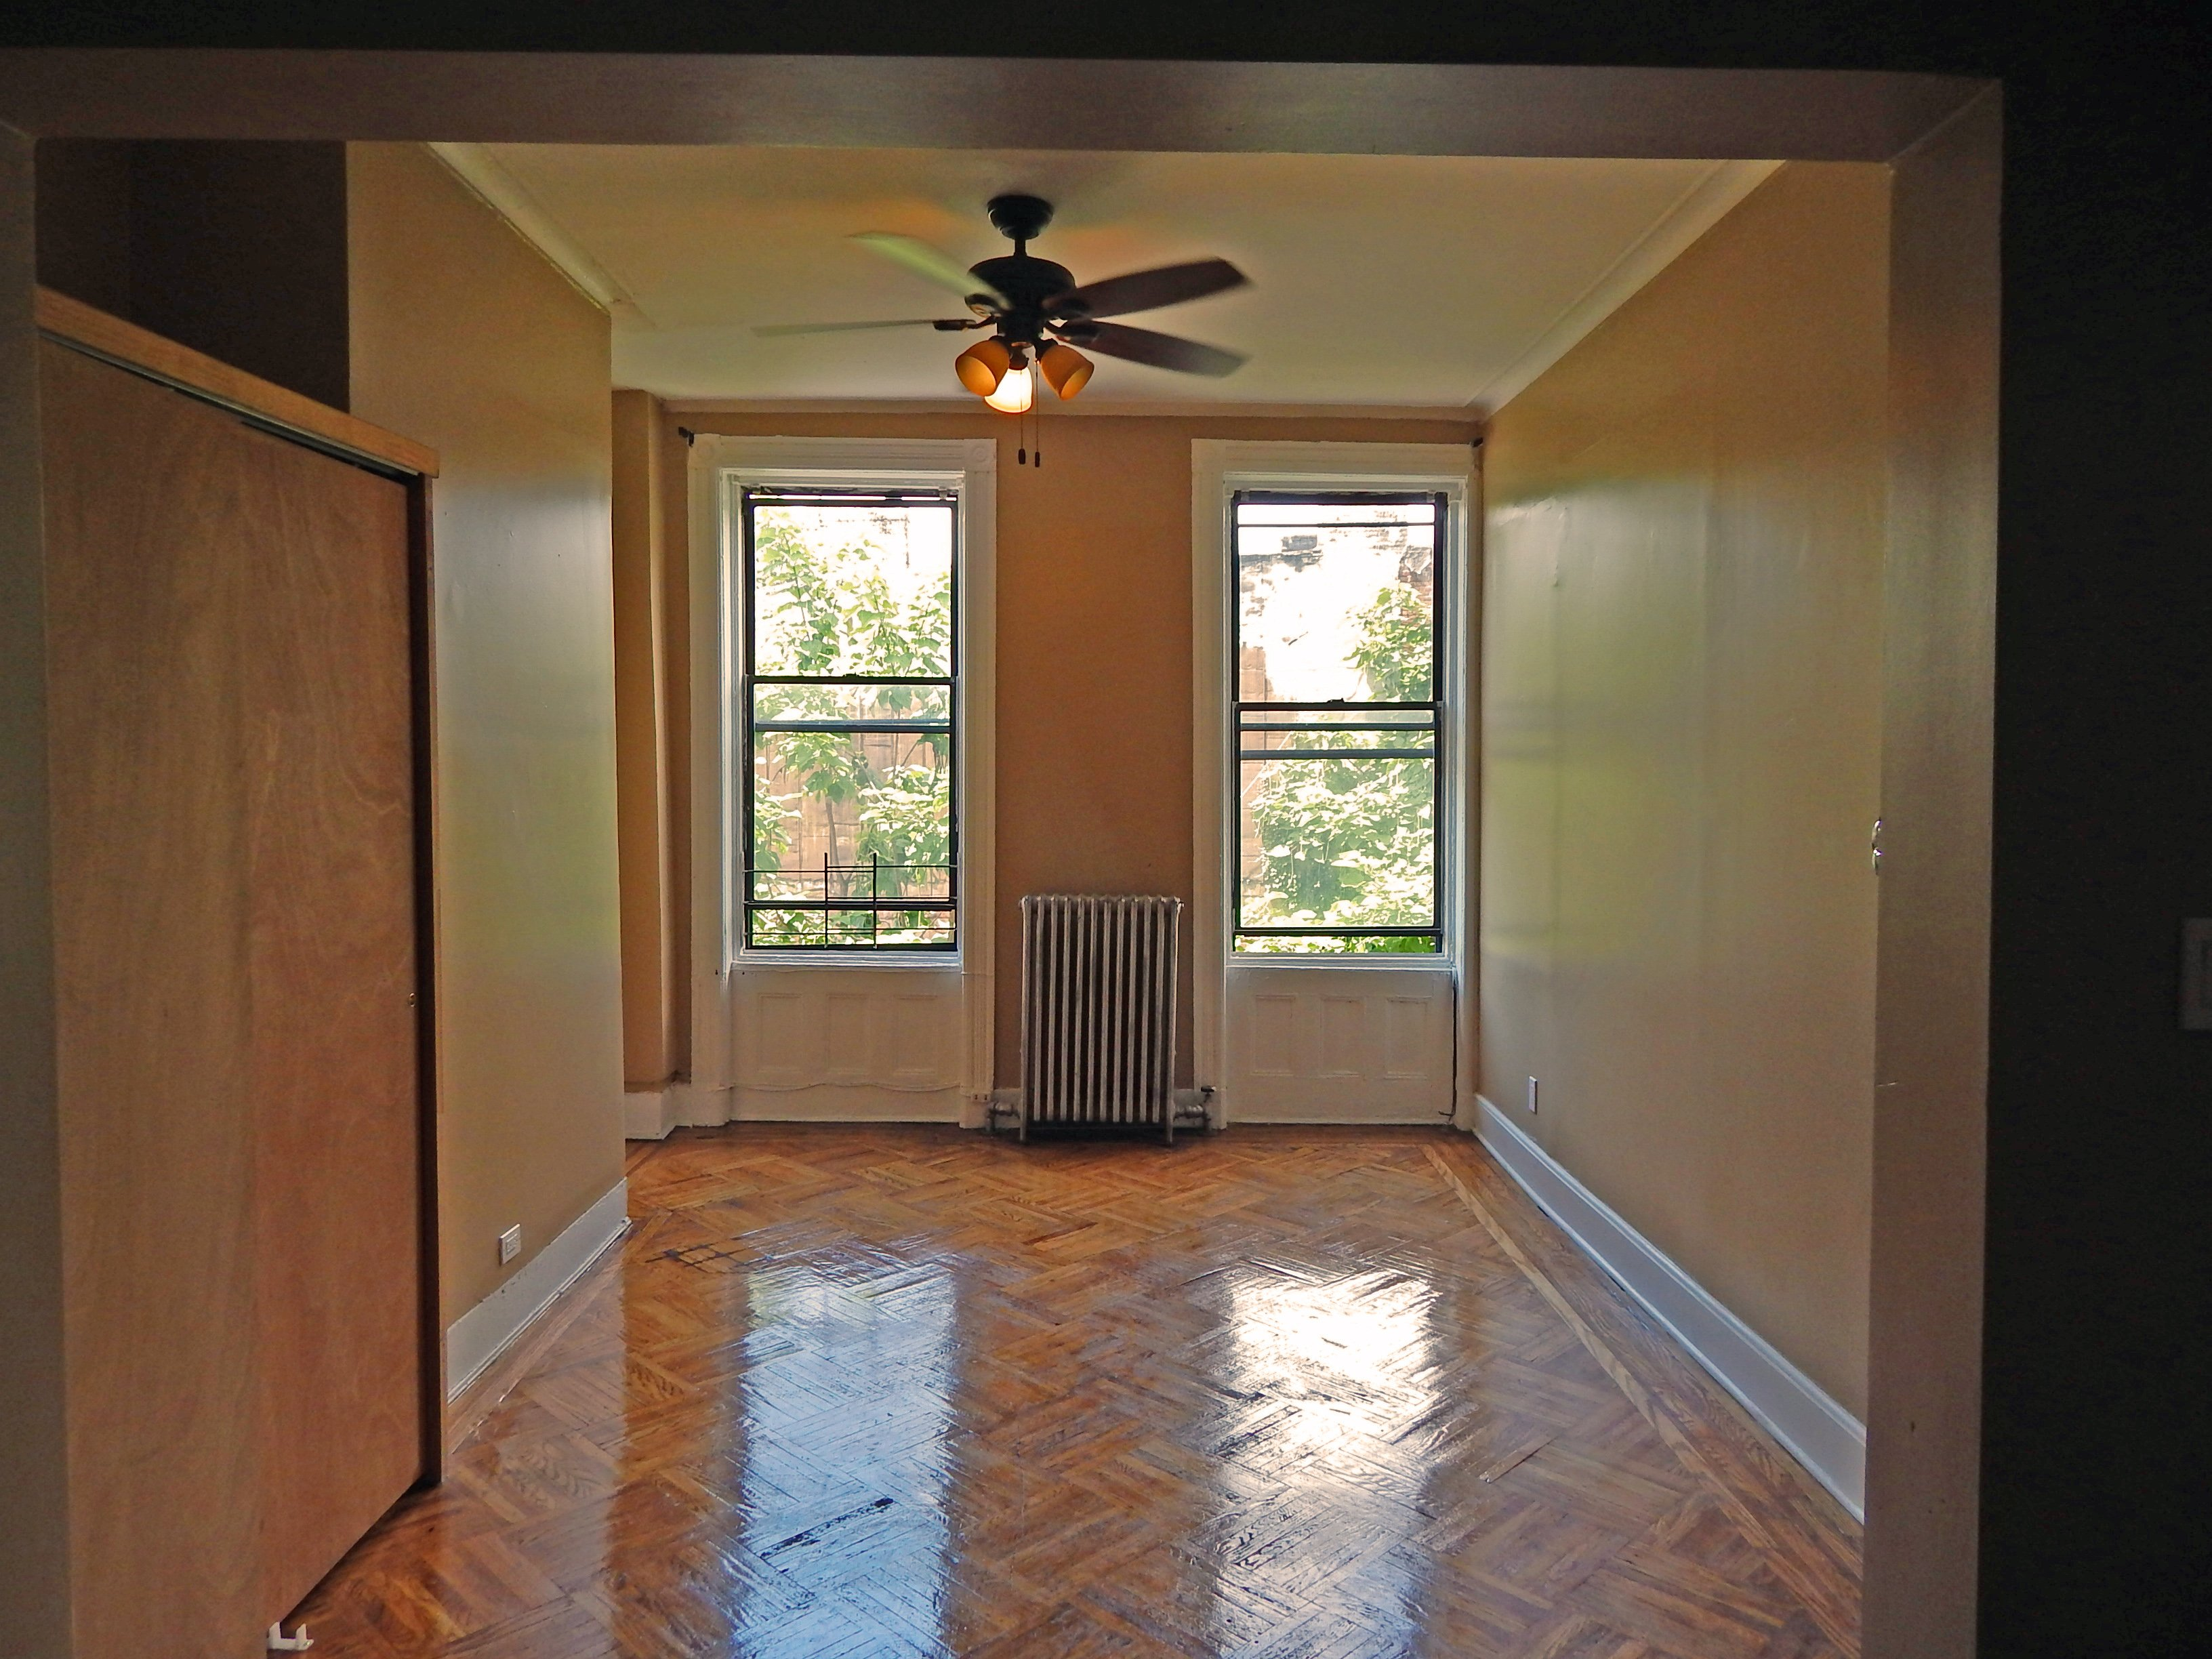 Stuyvesant ave 2br apt for rent in bed stuy brooklyn crg3124 for Two bedroom apt in bed stuy area